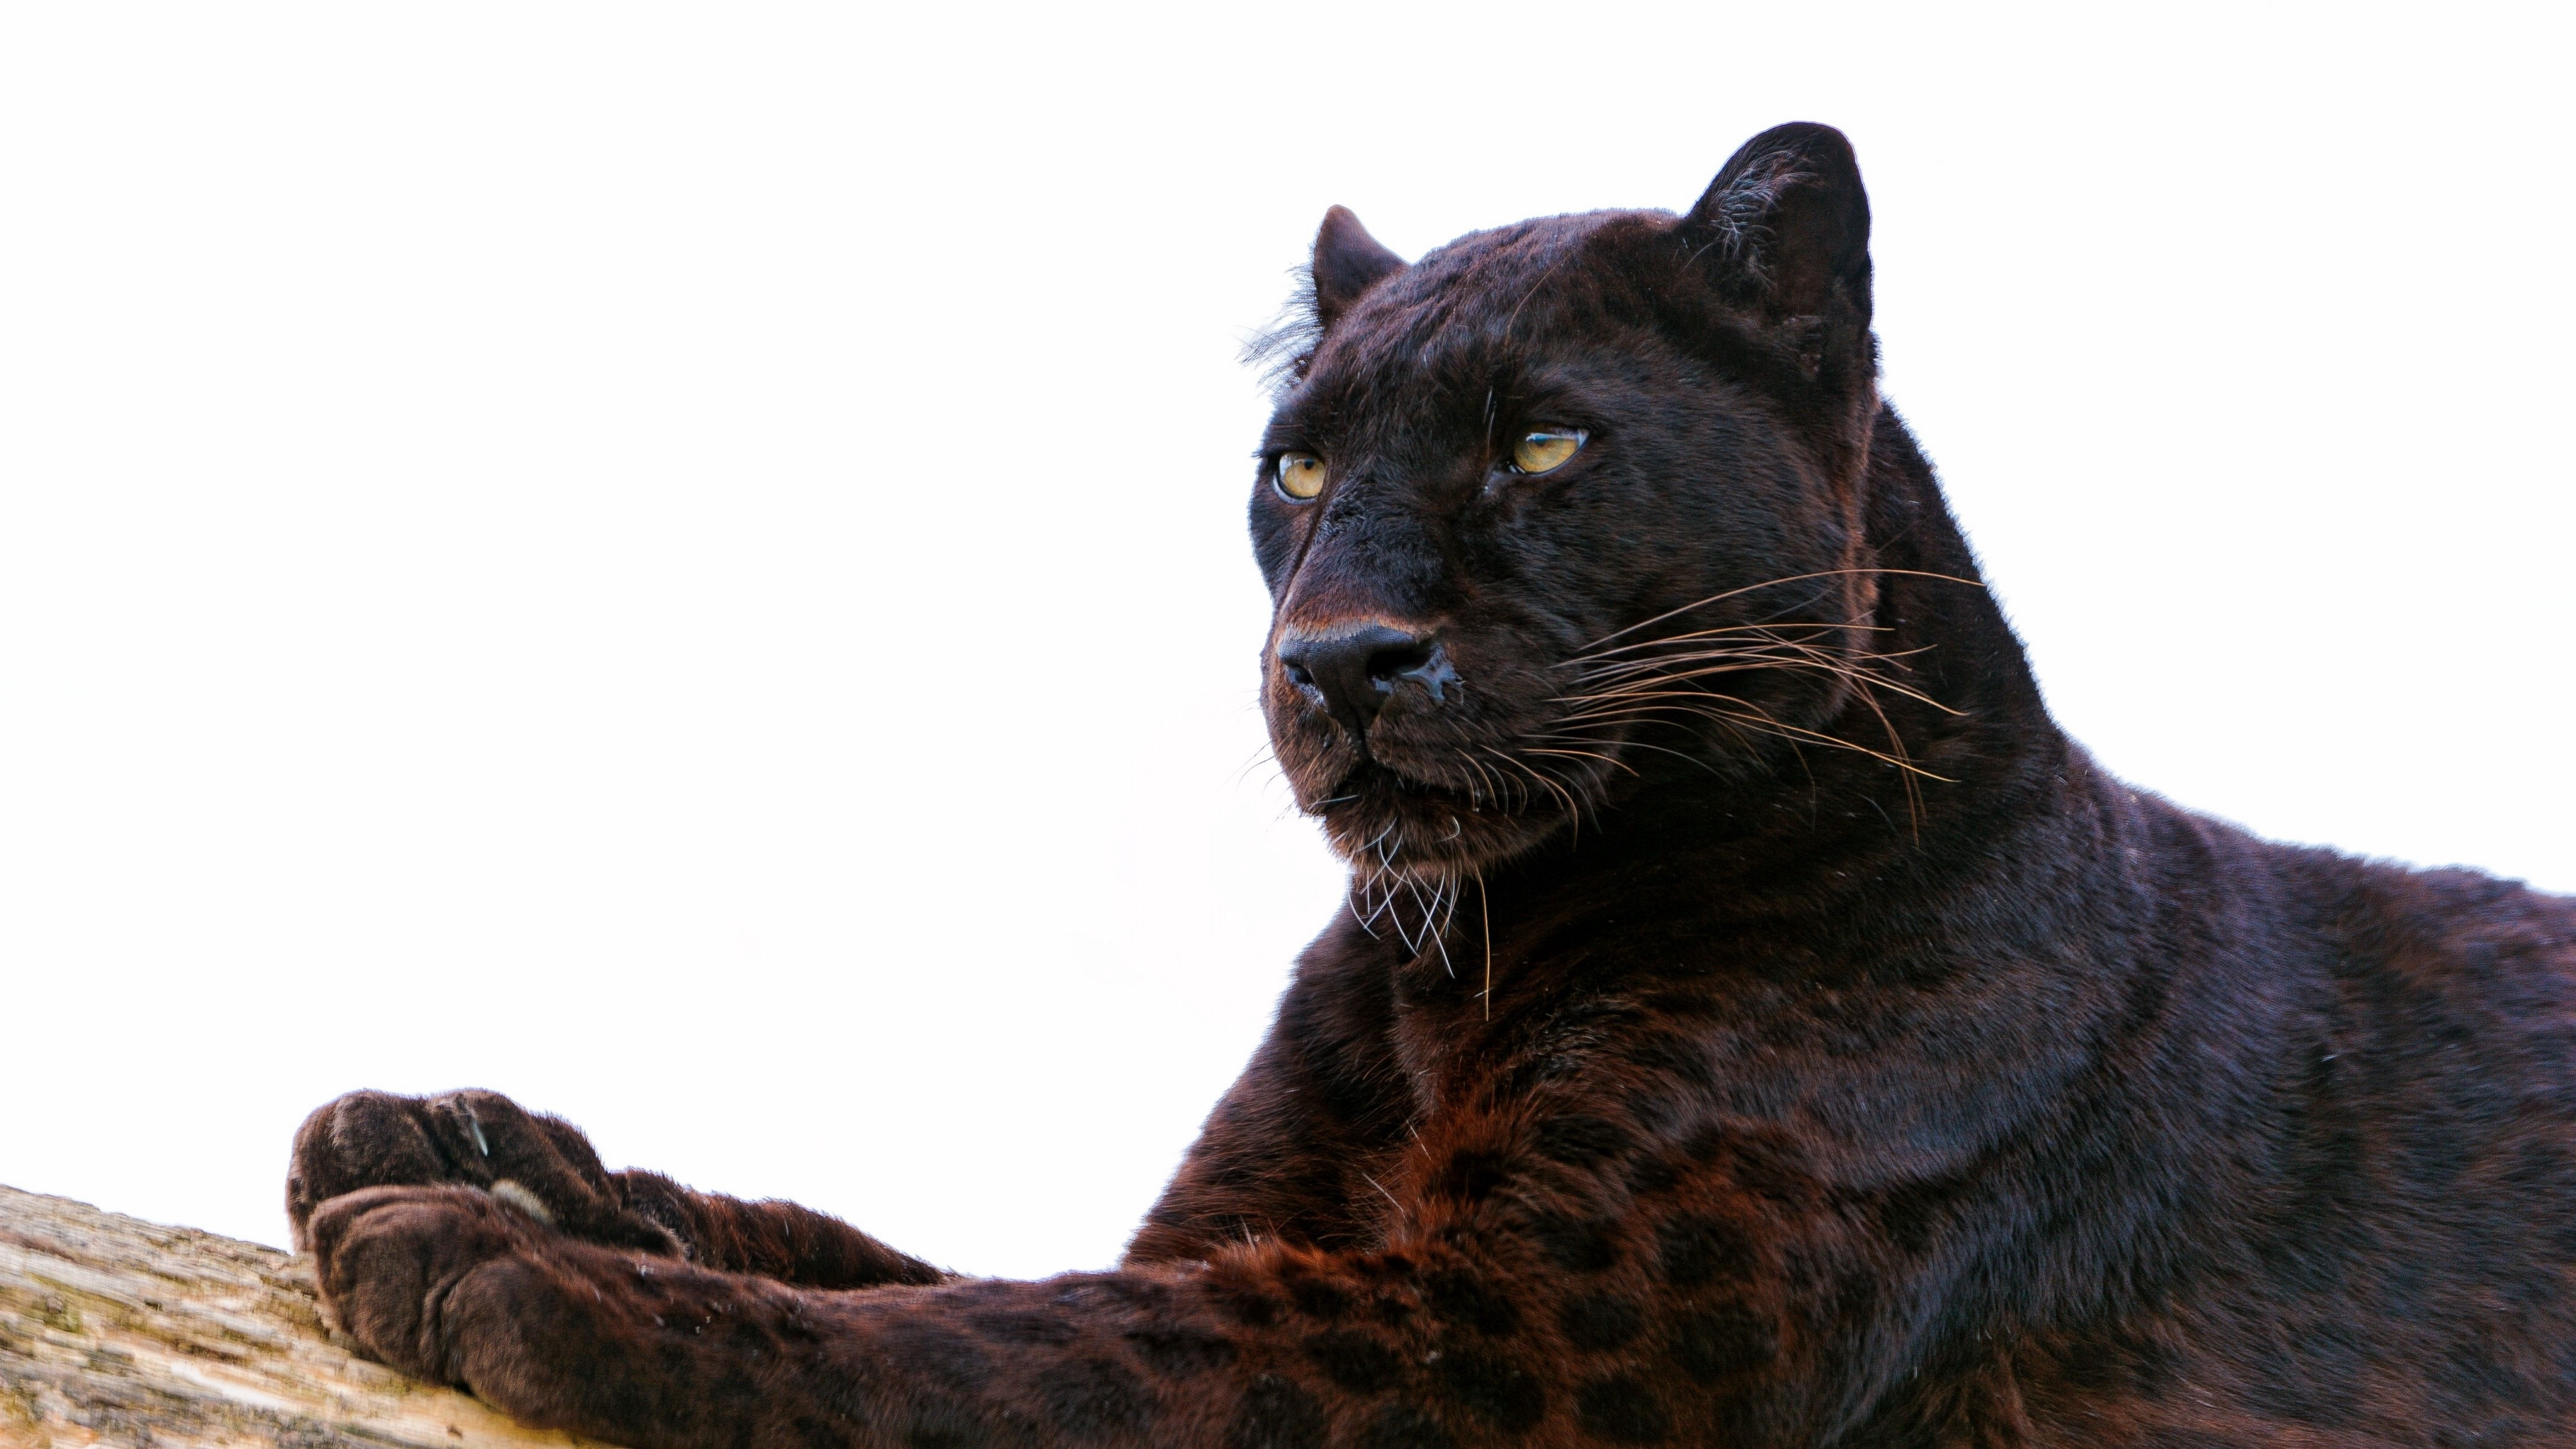 Wallpaper 4k Panther Paw Lie Down Predator Big Cat 4k Lie Down Panther Paw